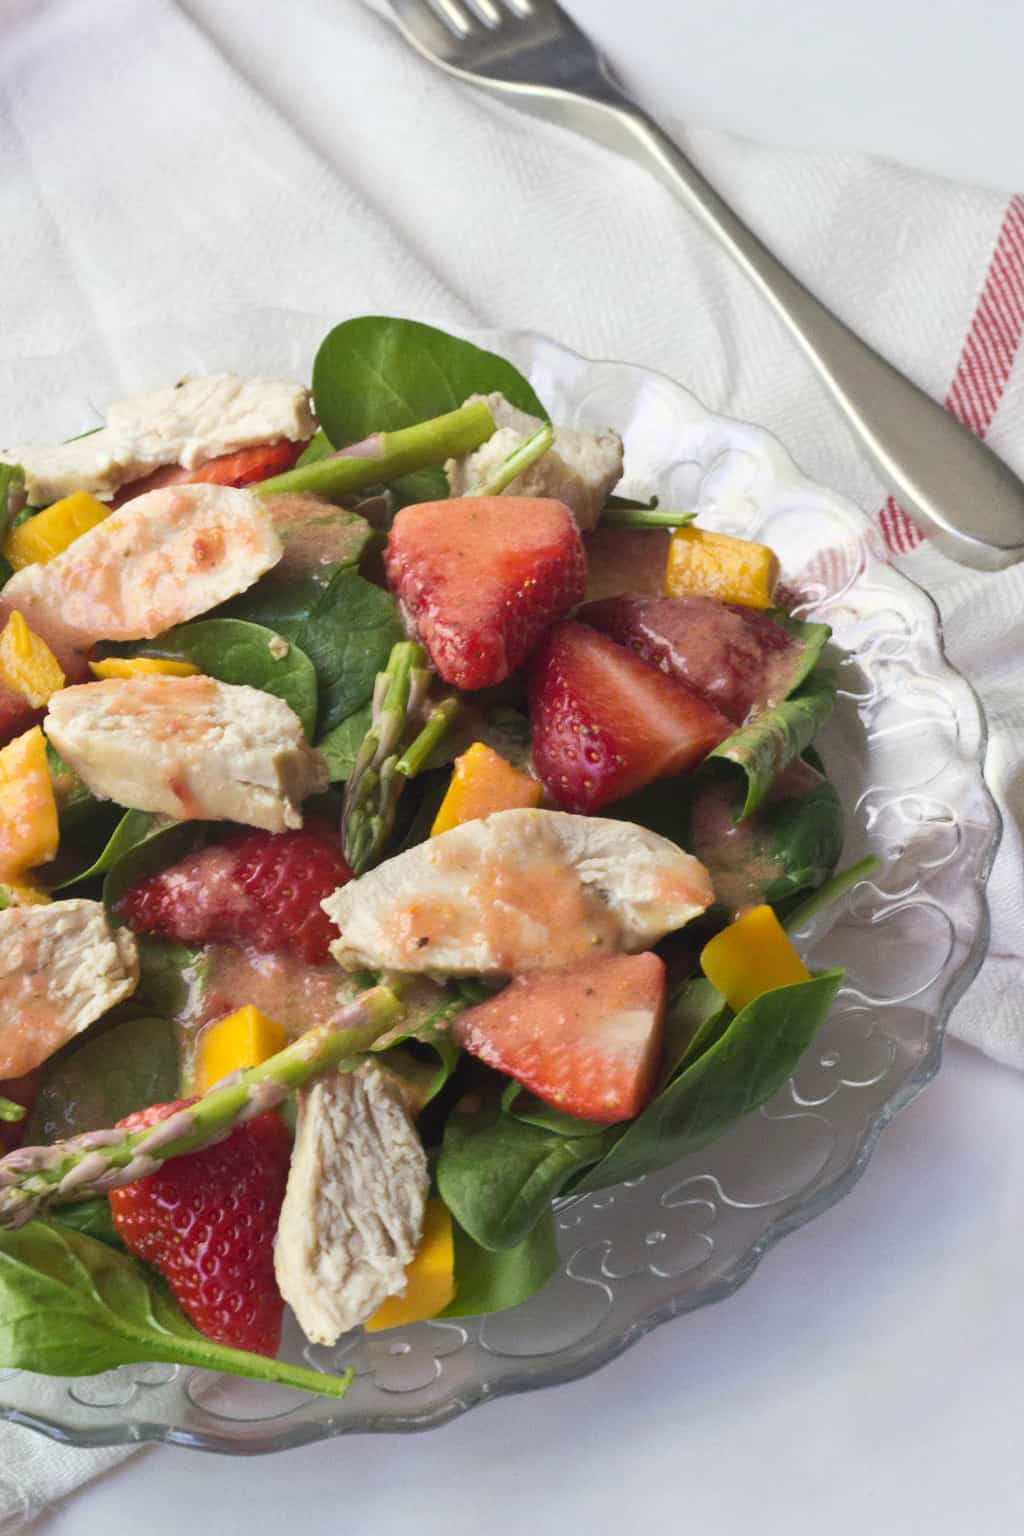 close up of a salad with chicken, fruit, and citrus dressing on a glass plate